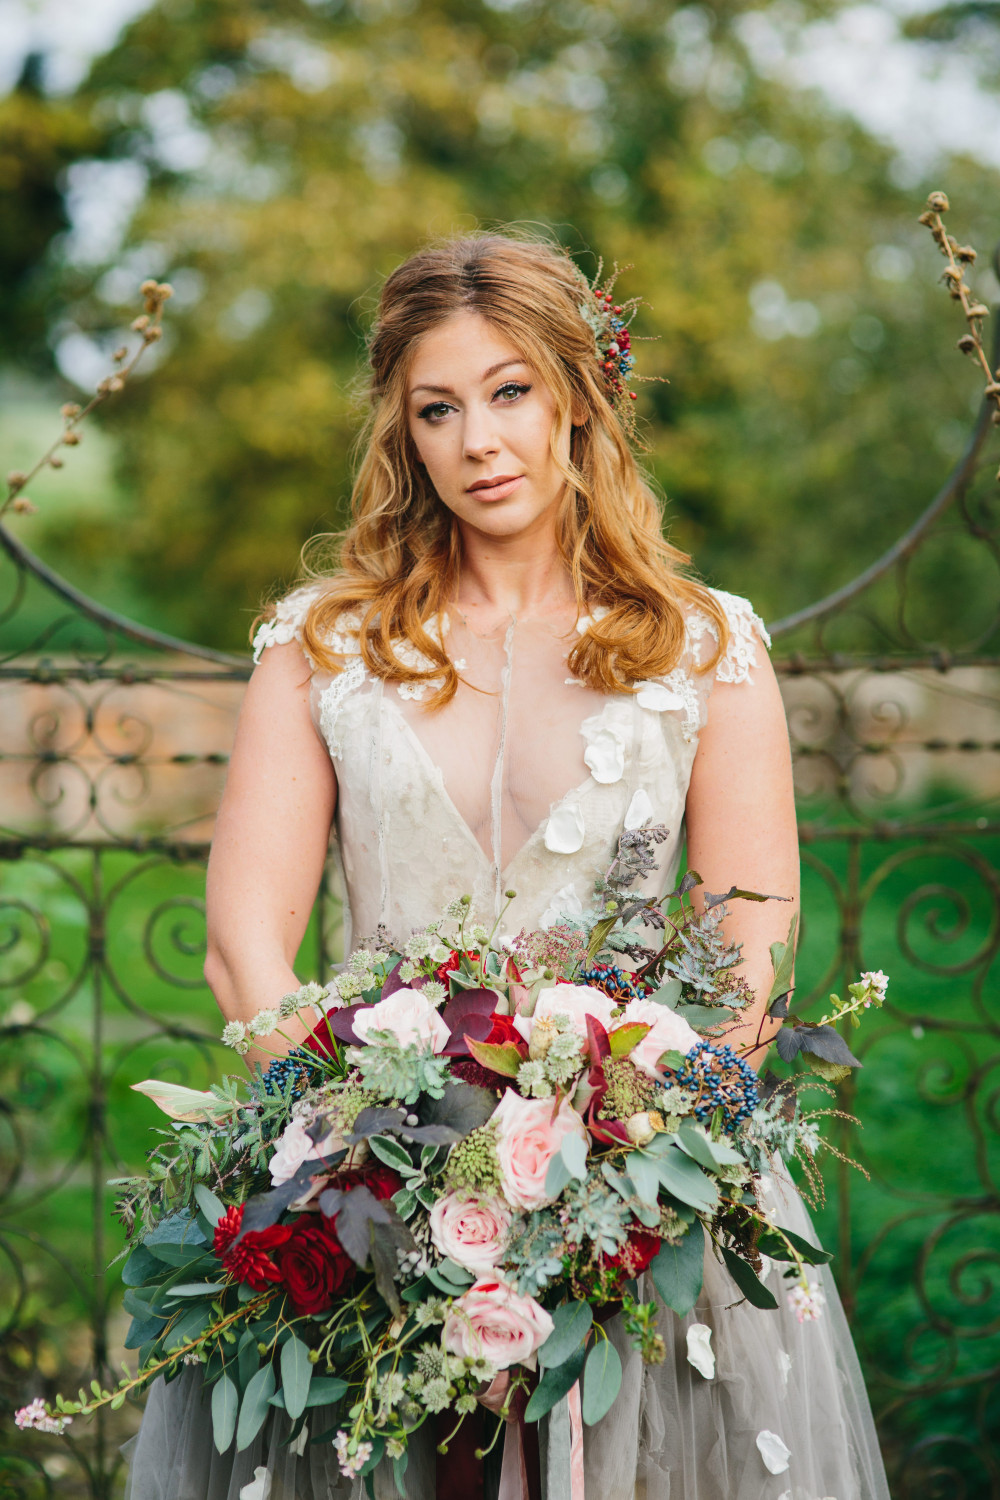 - Make Me Bridal Artist: Hair and Makeup by Jodie Elleanor.